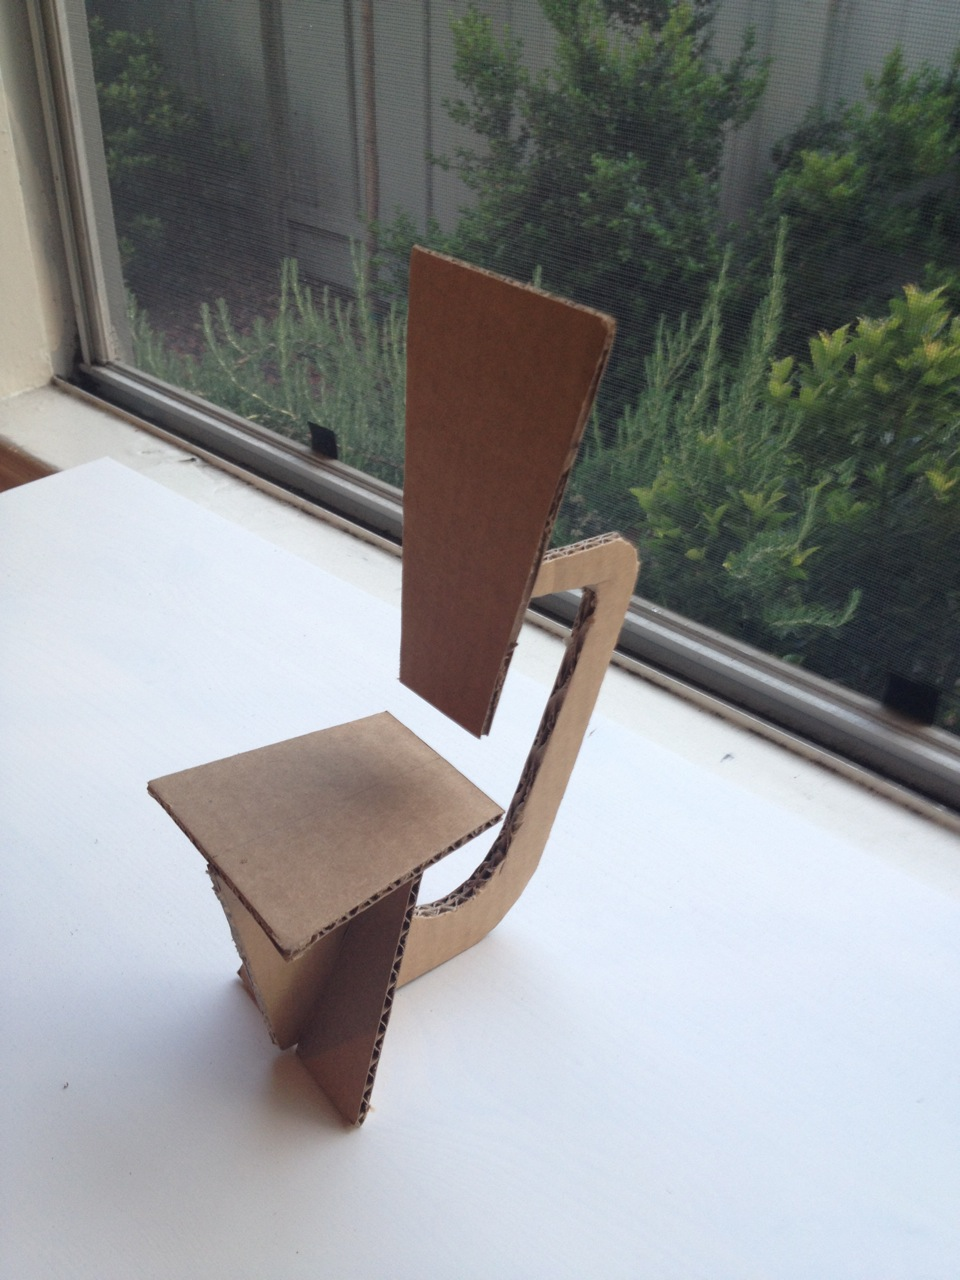 Cardboard model made to figure out best dimensions